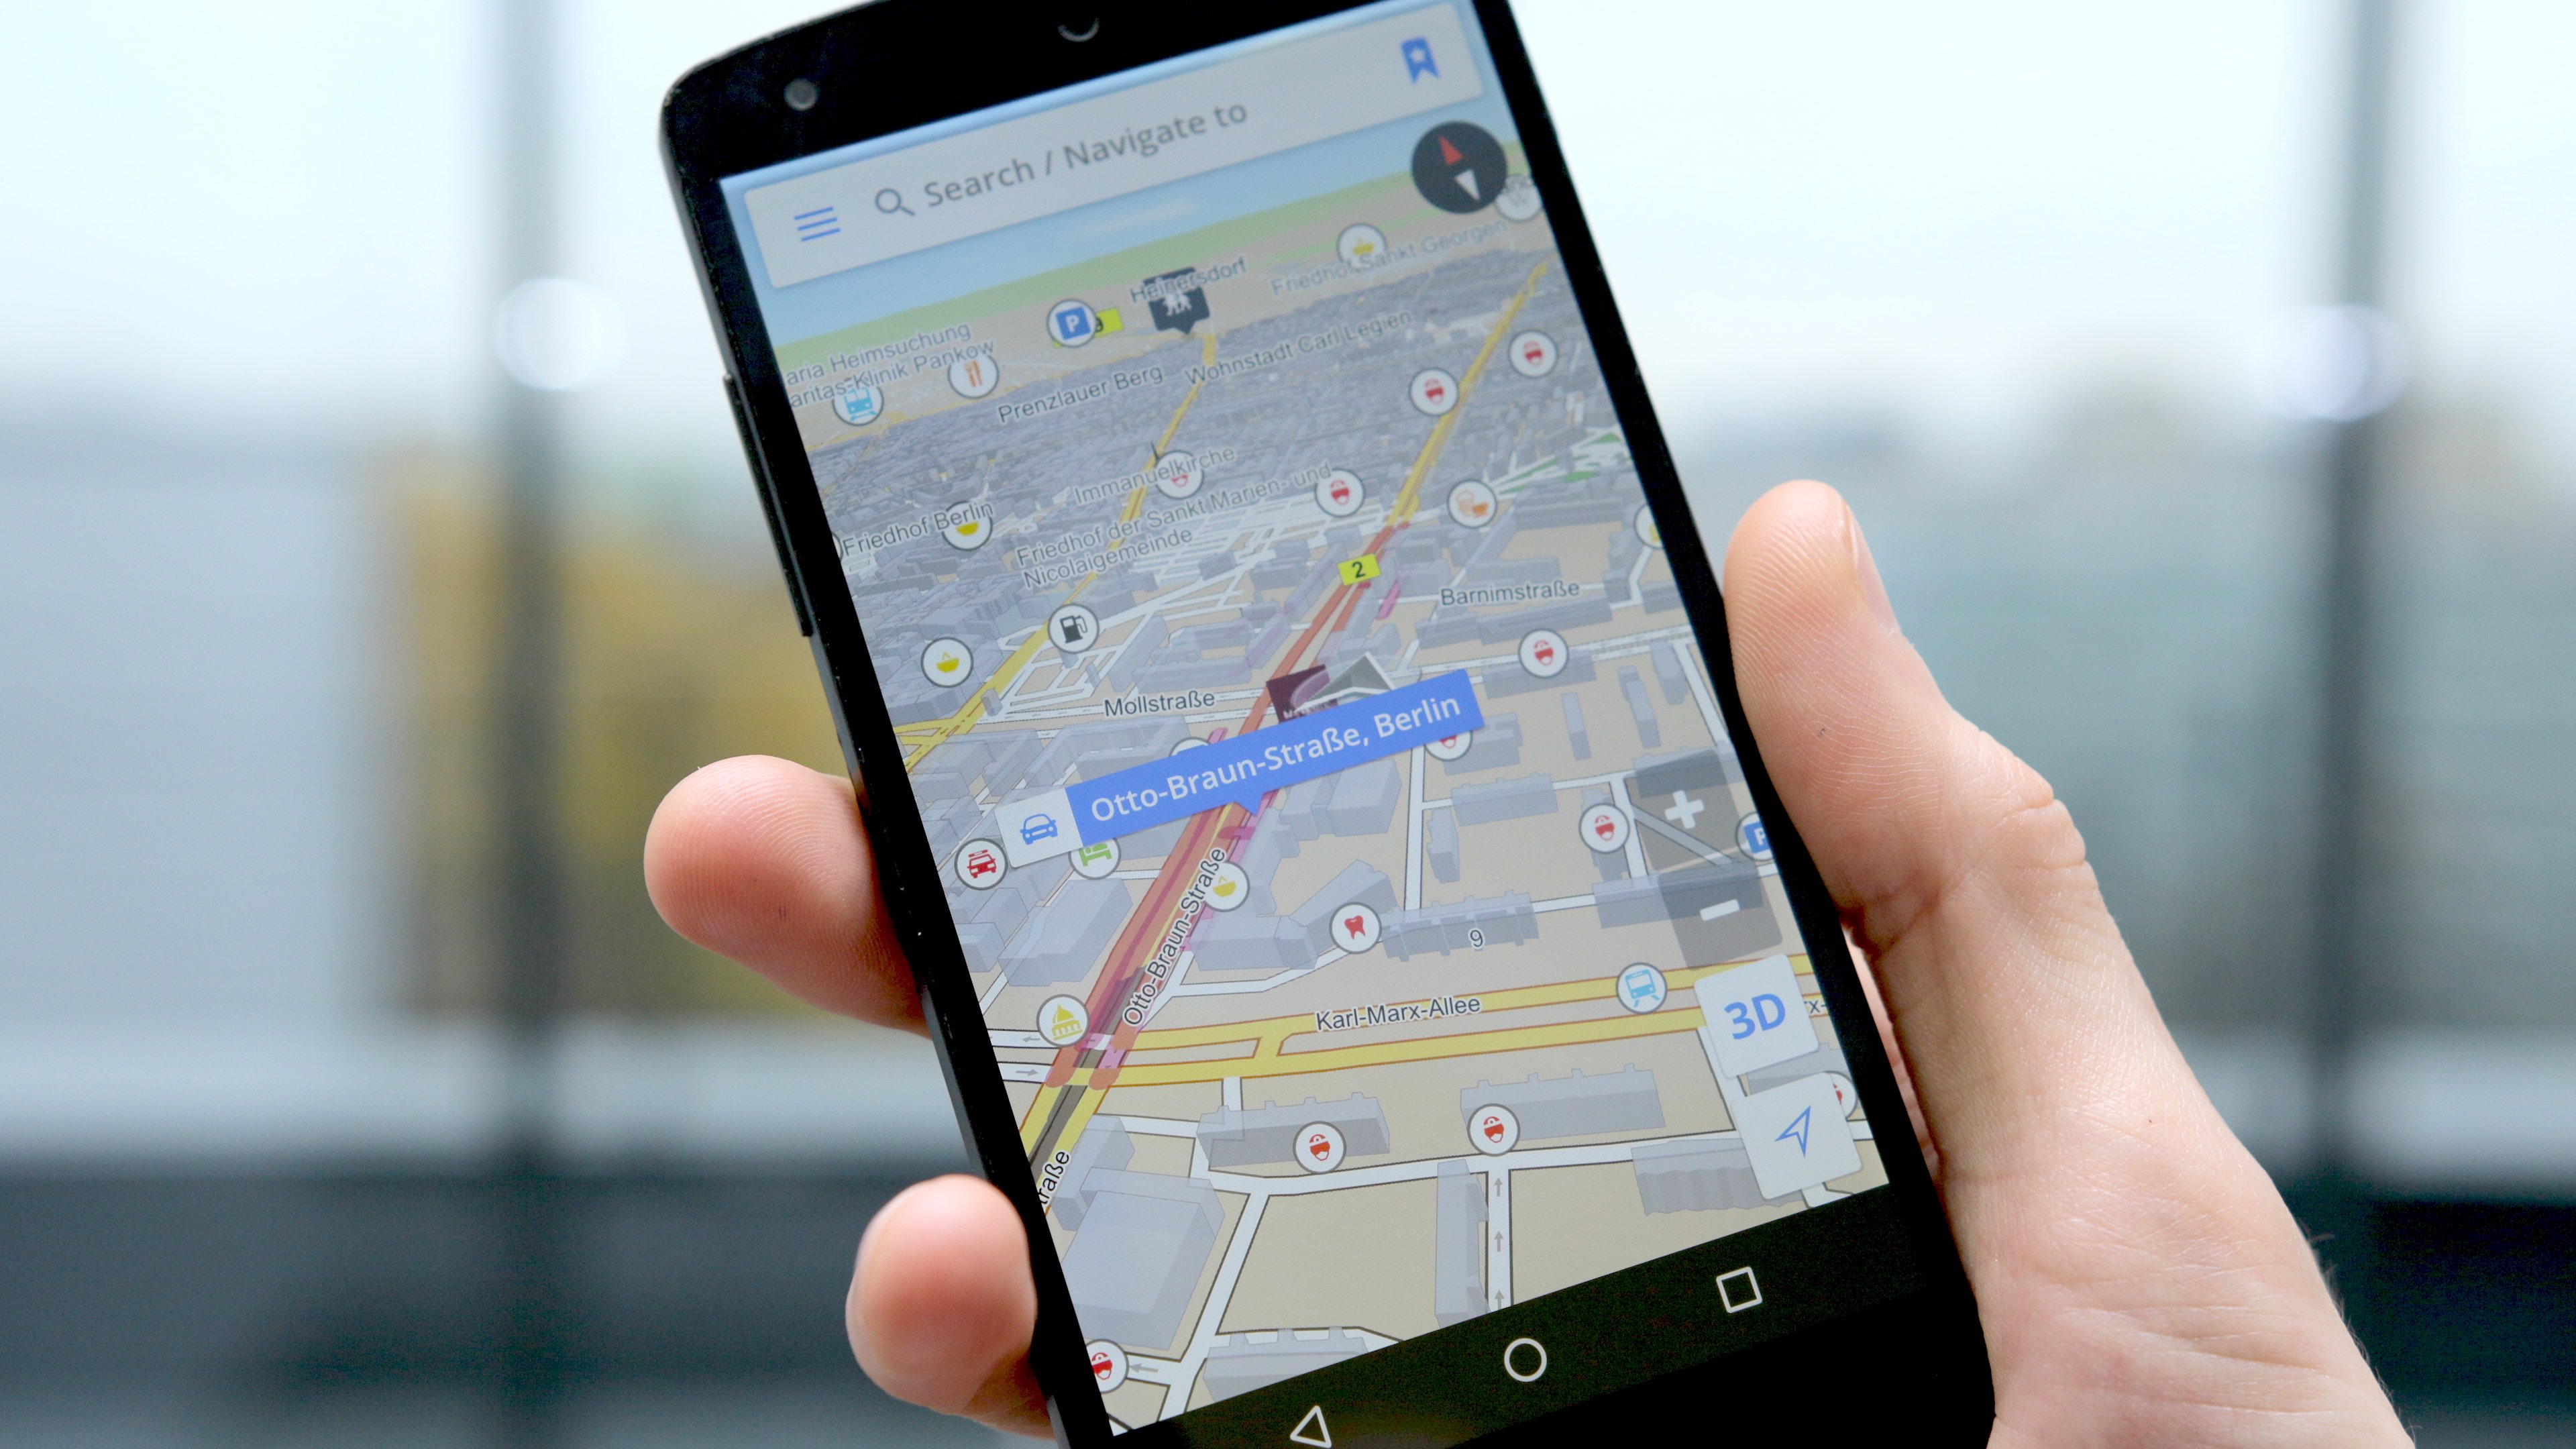 Navigator without internet for Android. Best navigators